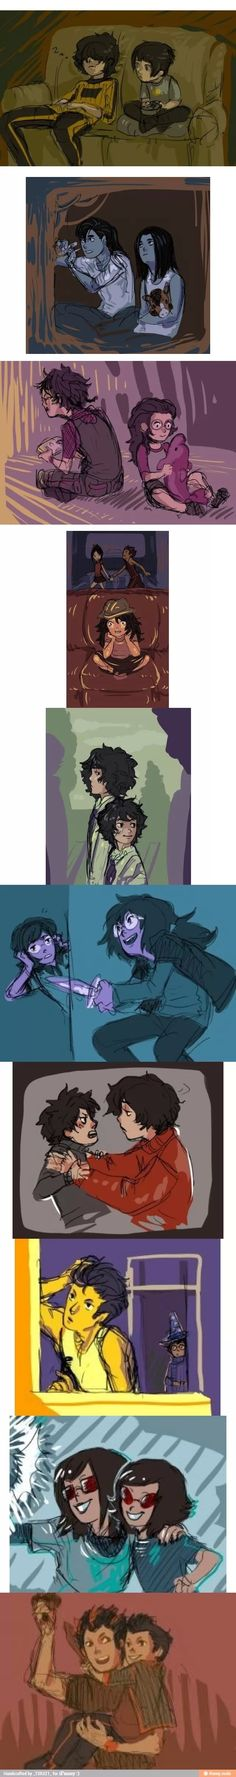 Ancestors and descendants, humanstuck. And how easy it would be to pass a pair of people like this in the library, on the bus, after some disaster.